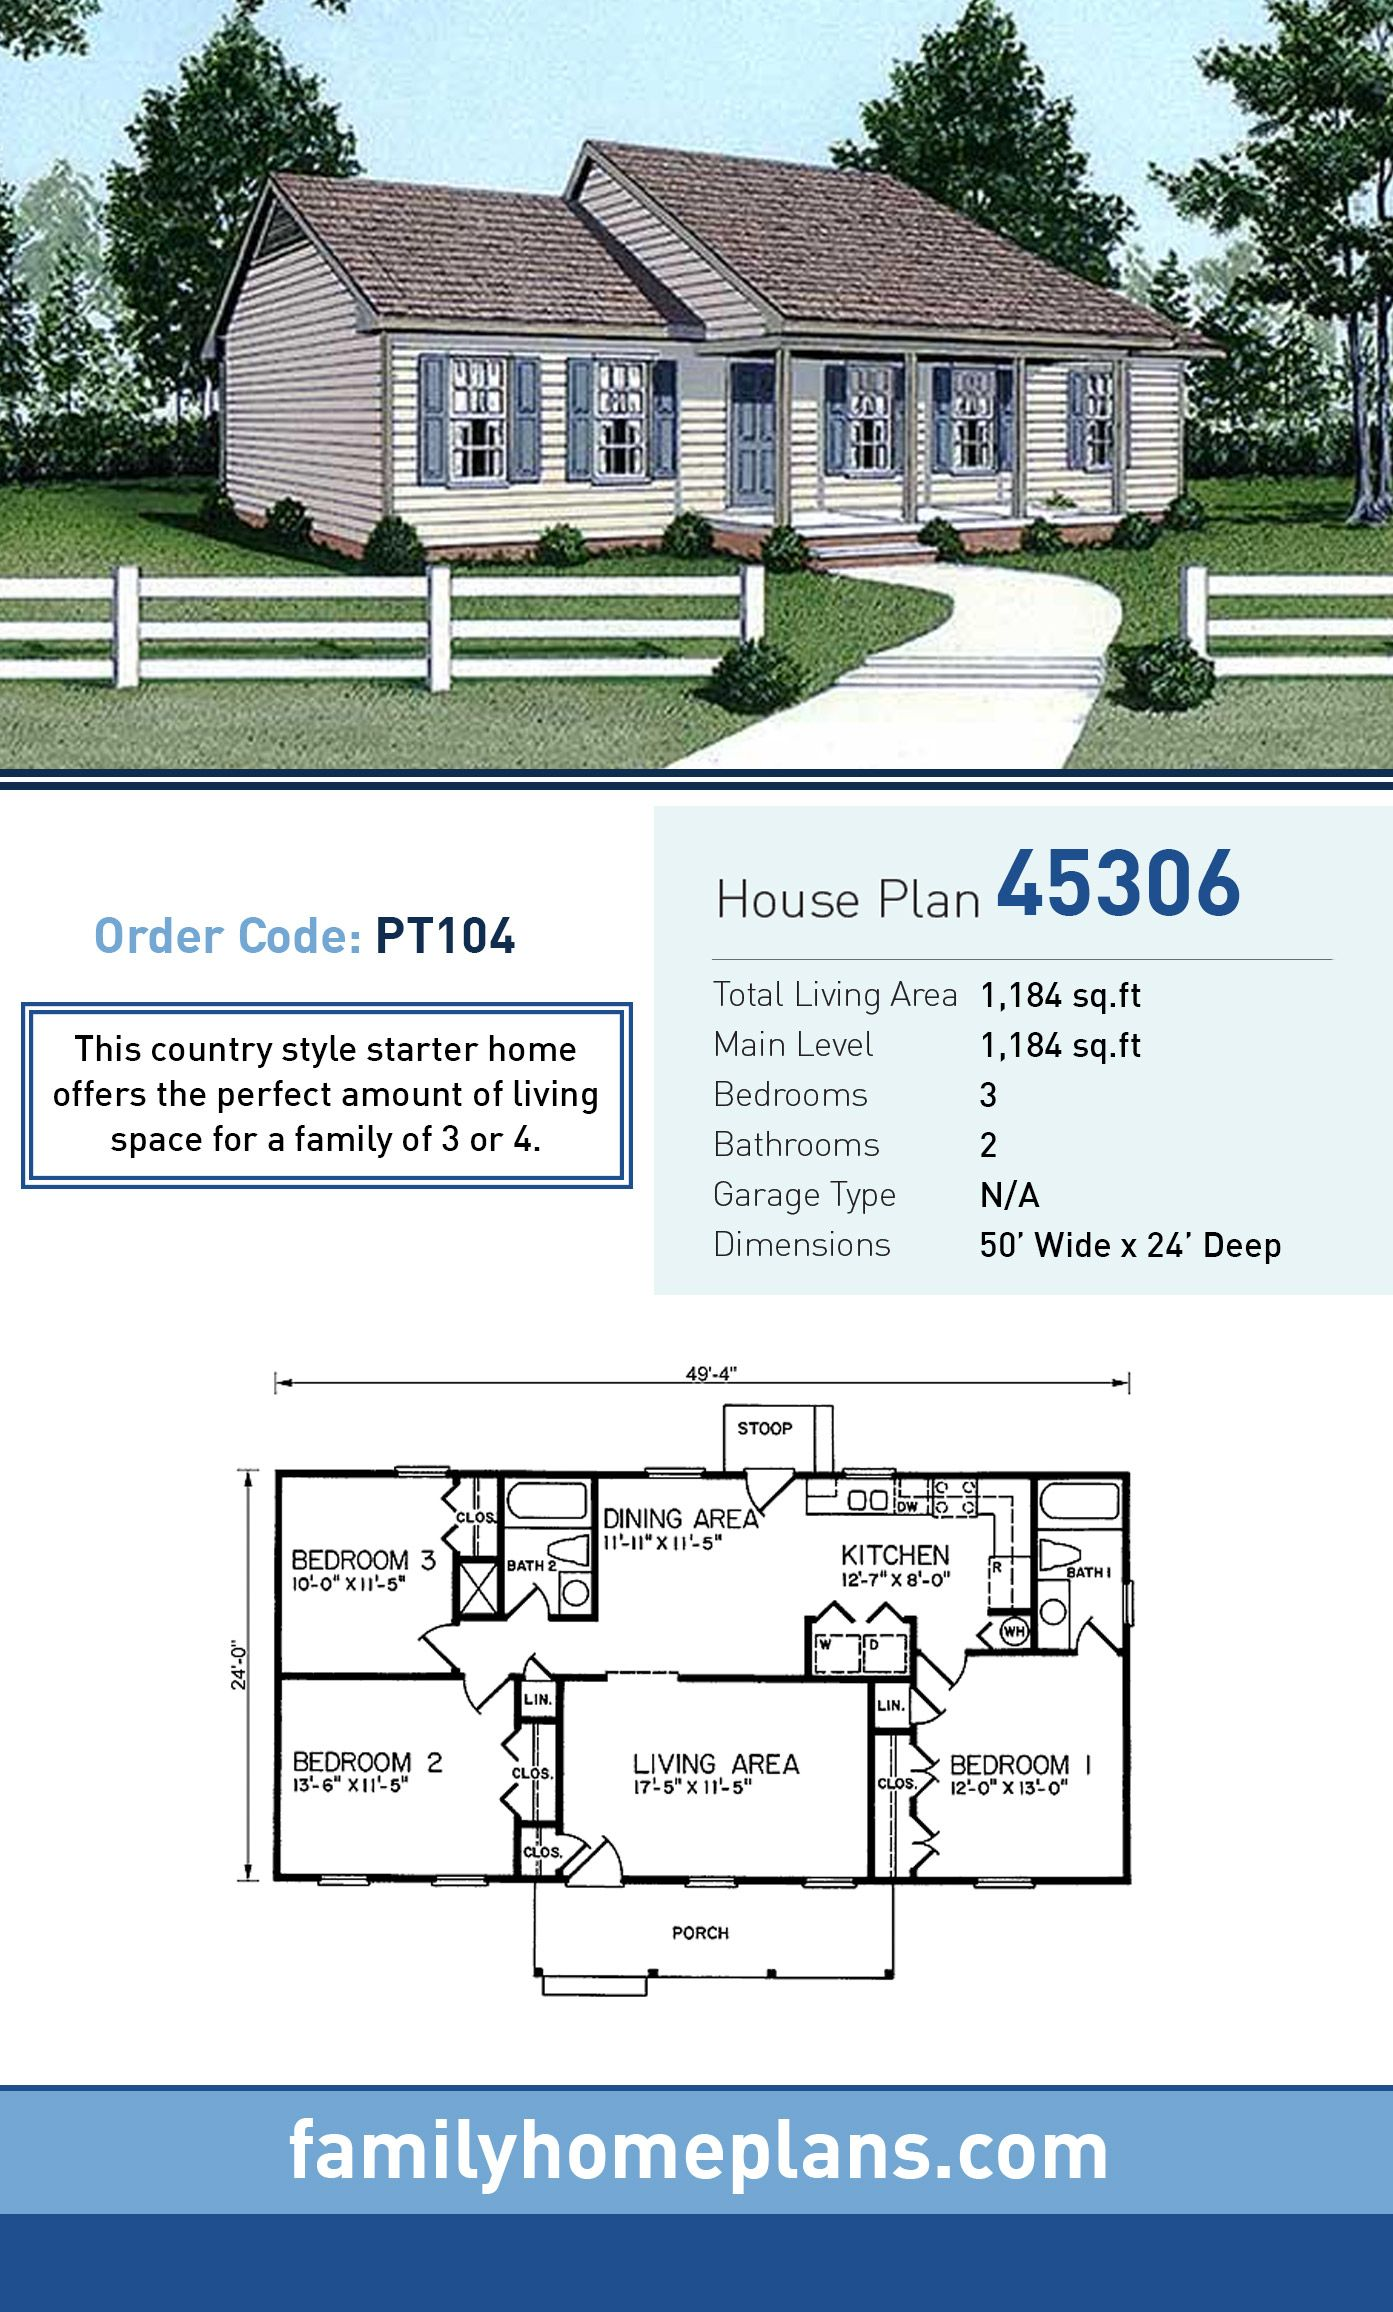 Ranch Style House Plan 45306 With 3 Bed 2 Bath Starter Home Plans Vacation House Plans Ranch Style House Plans